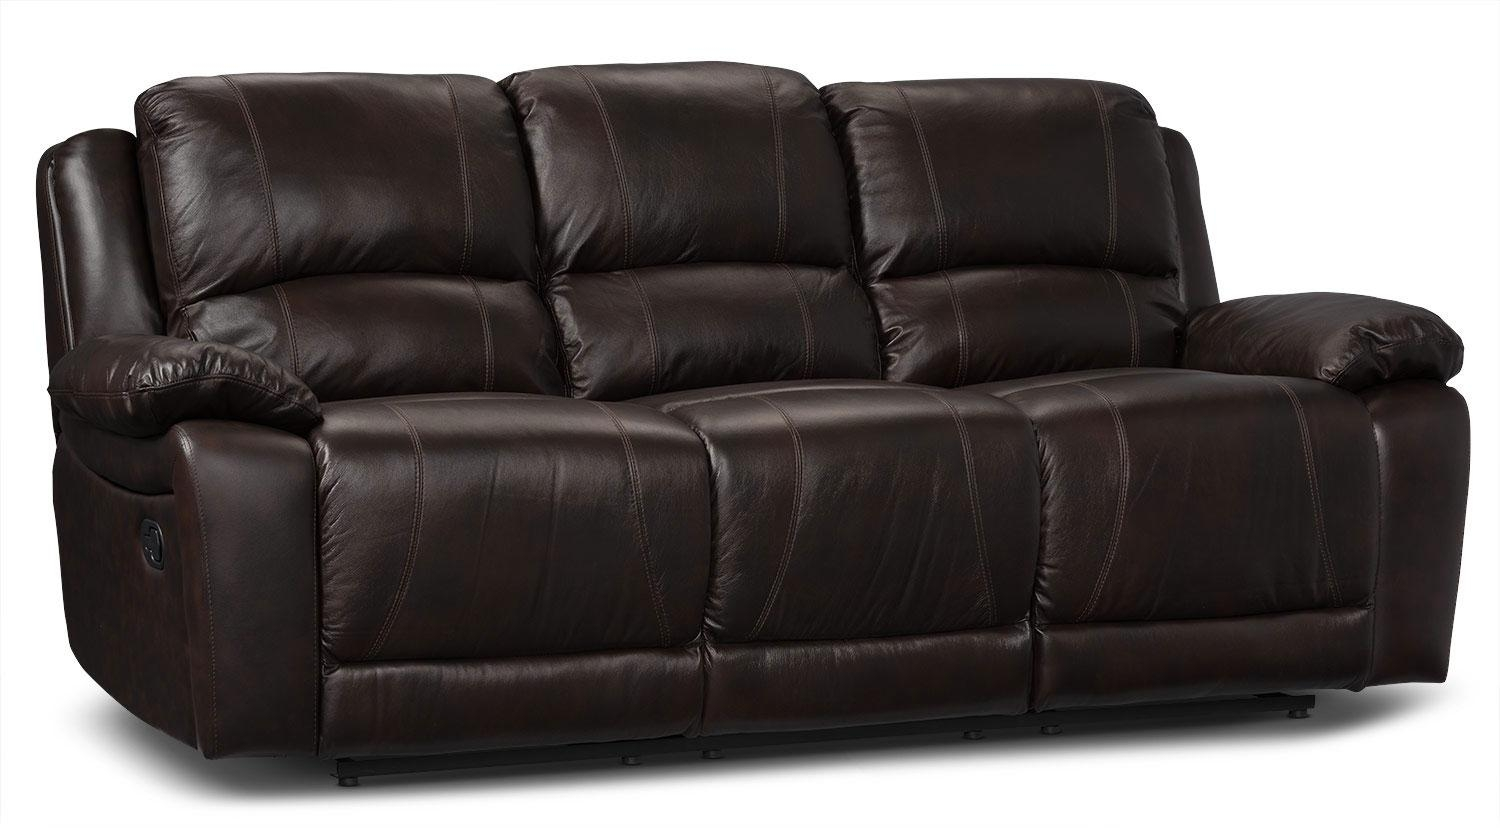 Marco Genuine Leather Power Reclining Sofa – Chocolate | The Brick Throughout The Brick Leather Sofa (View 11 of 20)